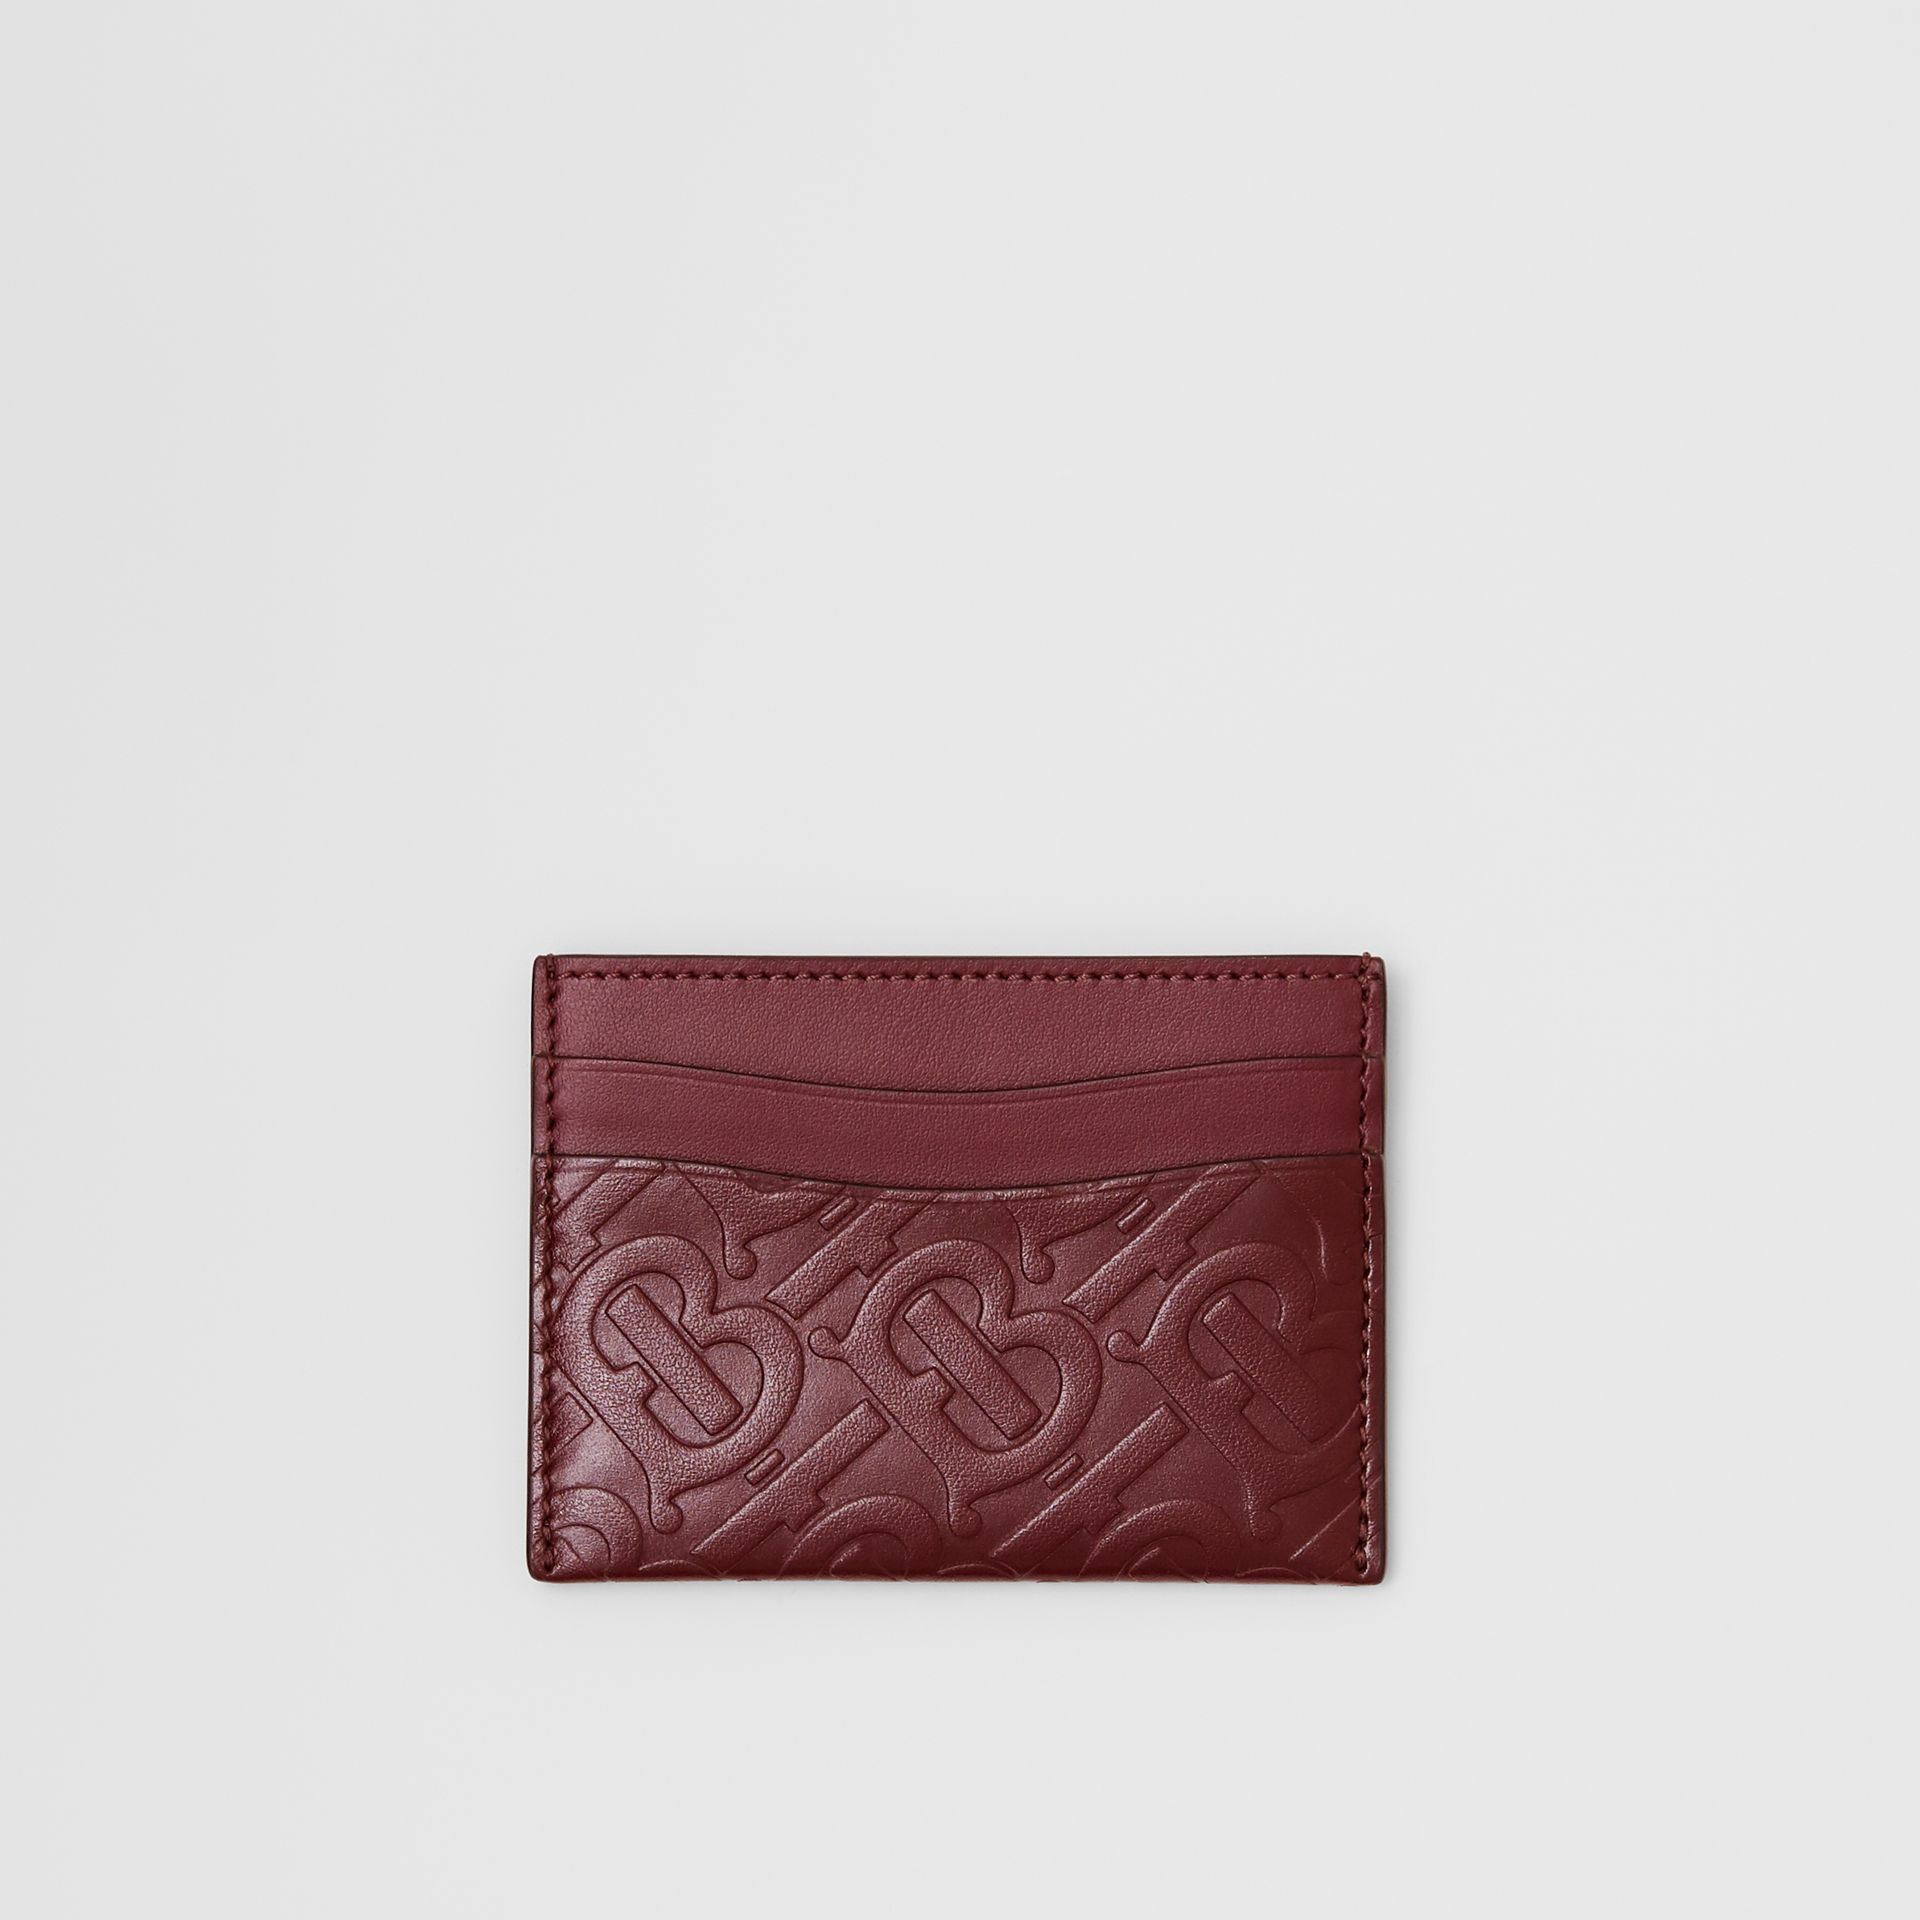 Monogram Leather Card Case in Oxblood - Women | Burberry - gallery image 0